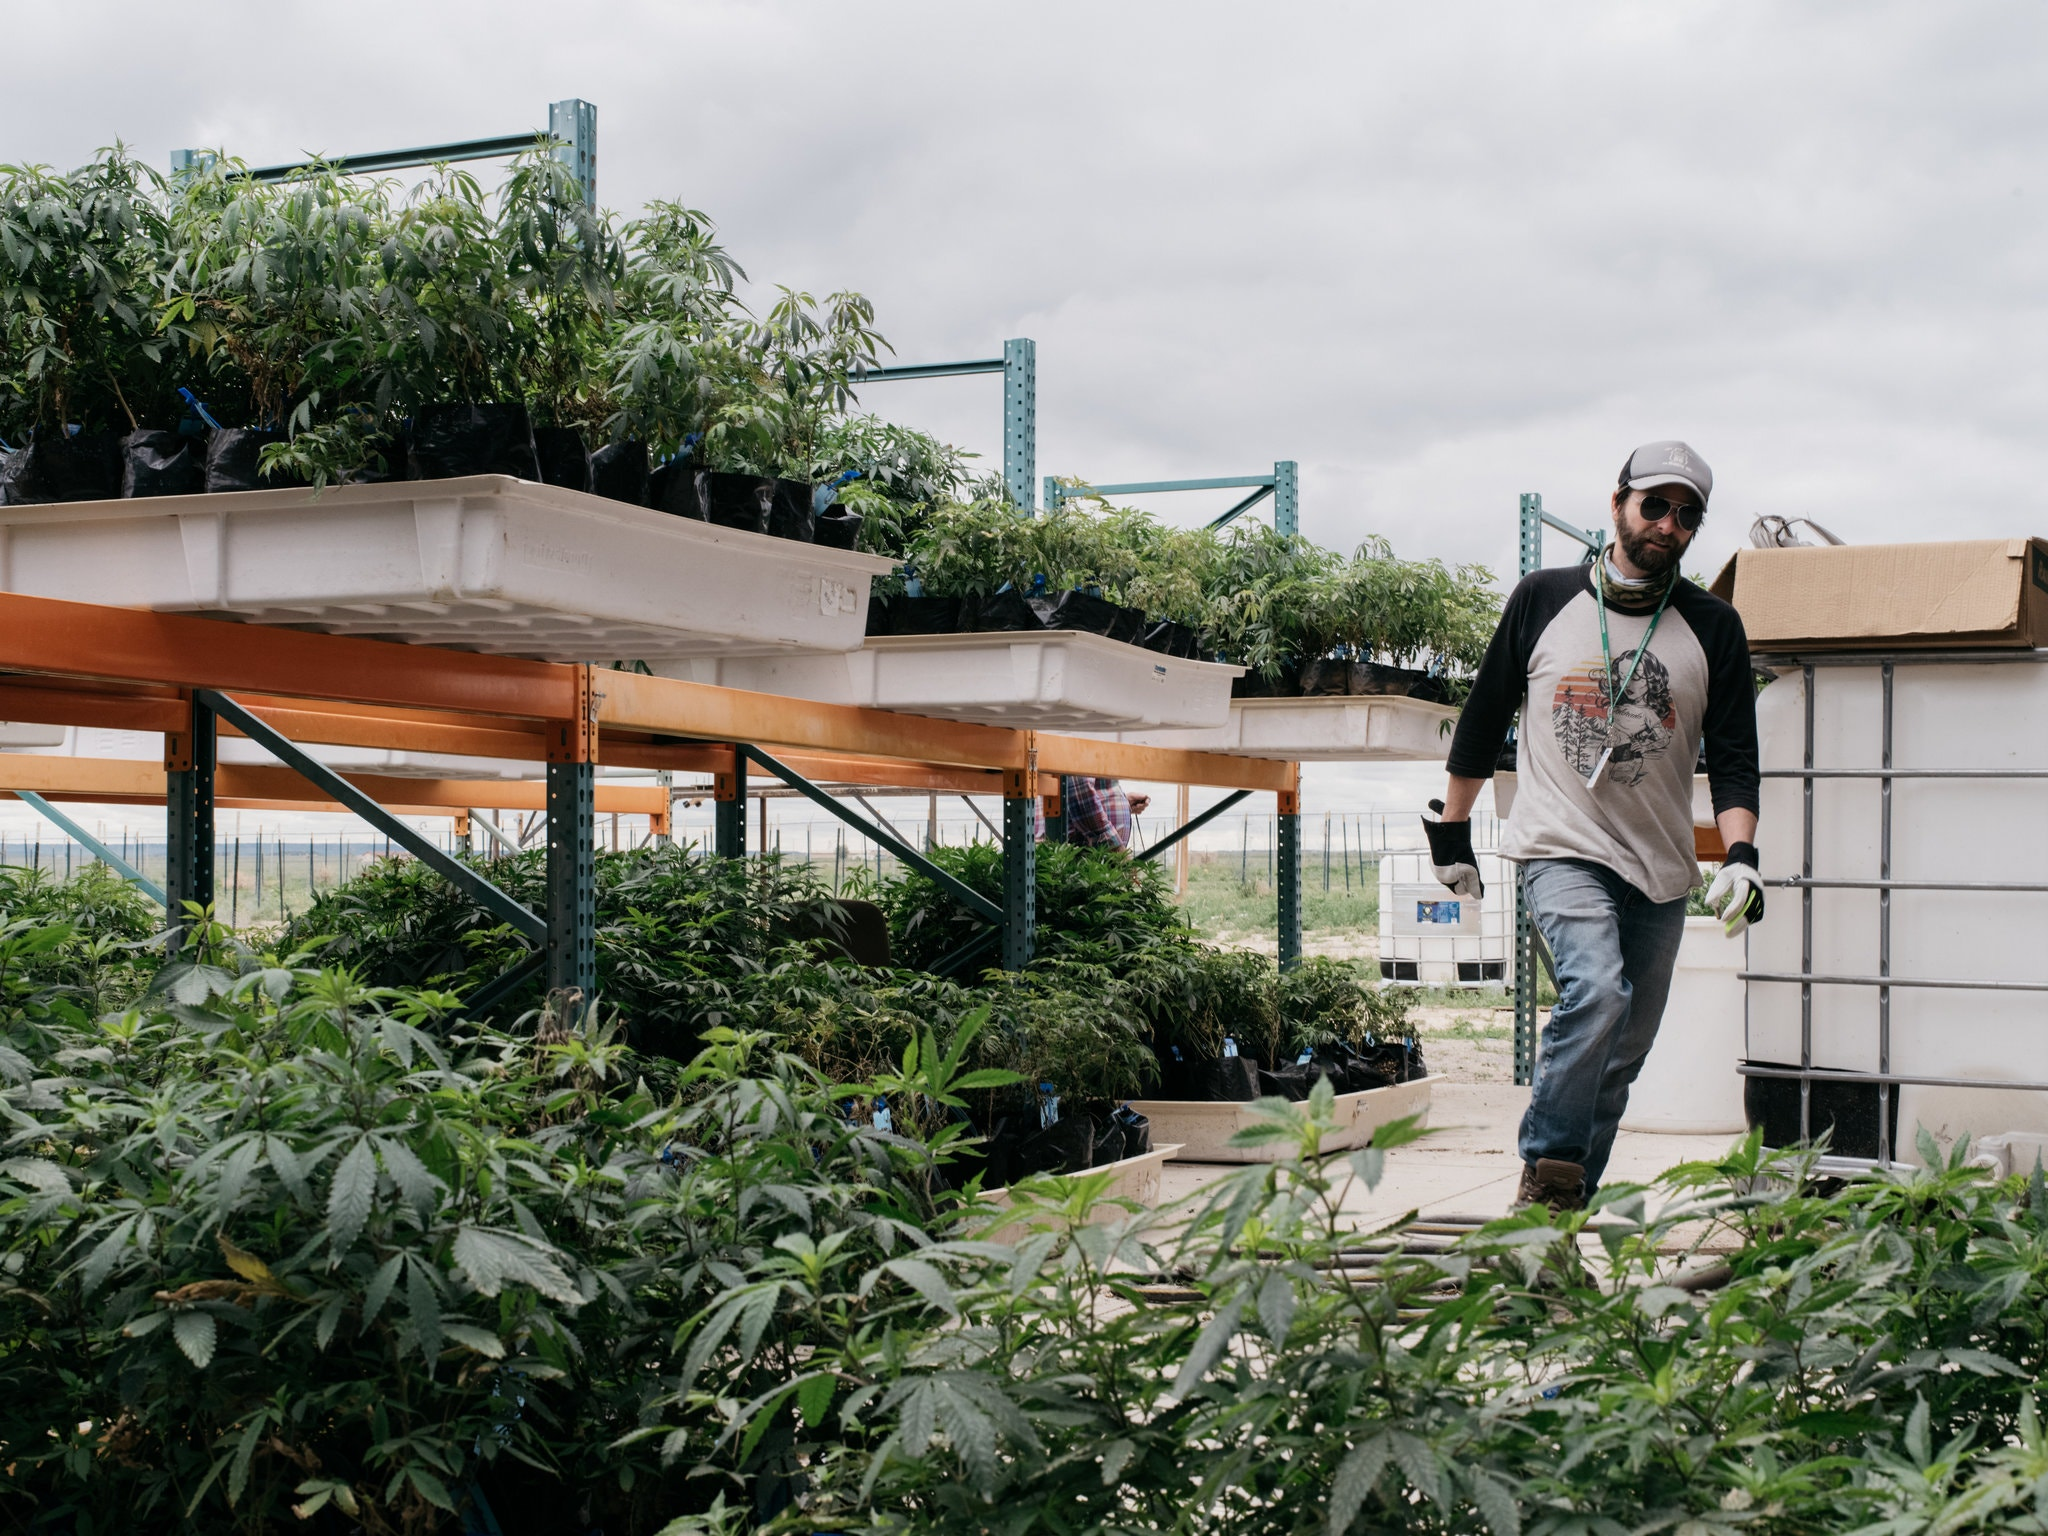 Michael Cole is the owner of Colorado Rocky Mountain Farms, which grows marijuana, in Pueblo.CreditBenjamin Rasmussen for The New York Times